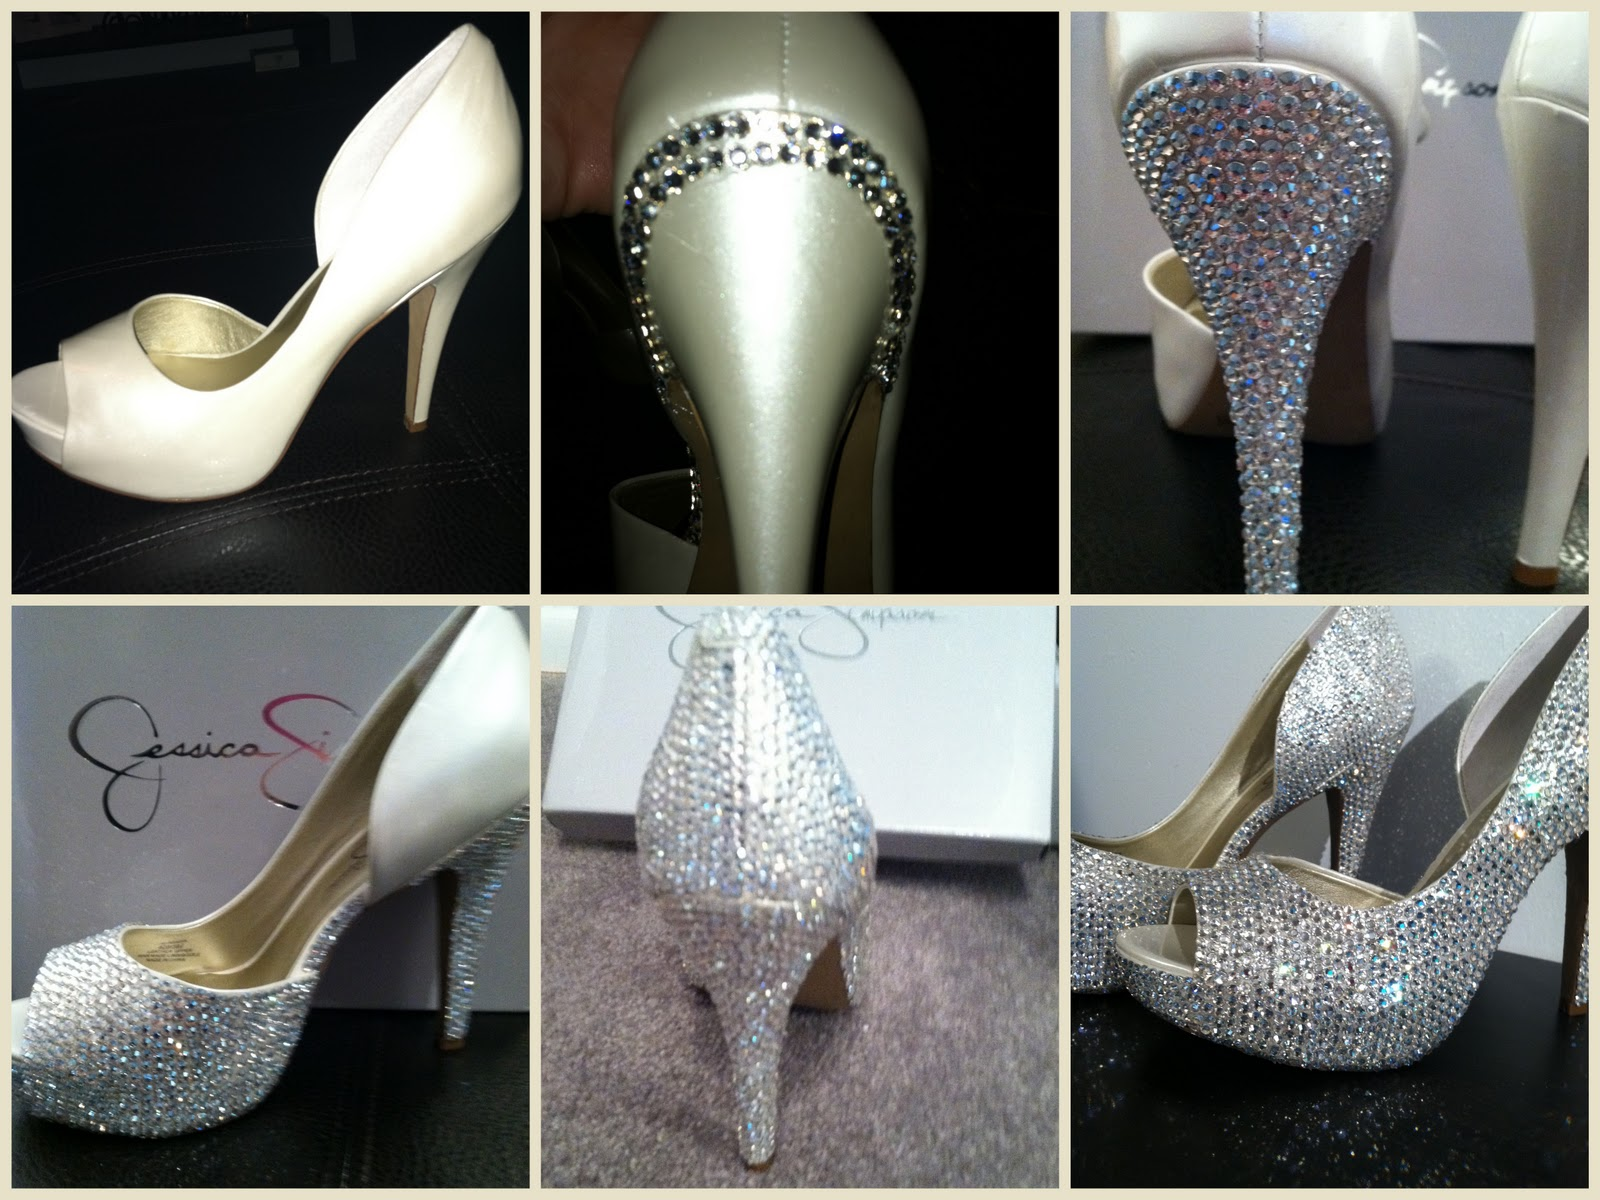 The shoes I used are the Jessica Simpson Acadia pumps in White Pearl  Patent. The crystals I used are Swarovski Crystal Moonlight 4e591cd26d